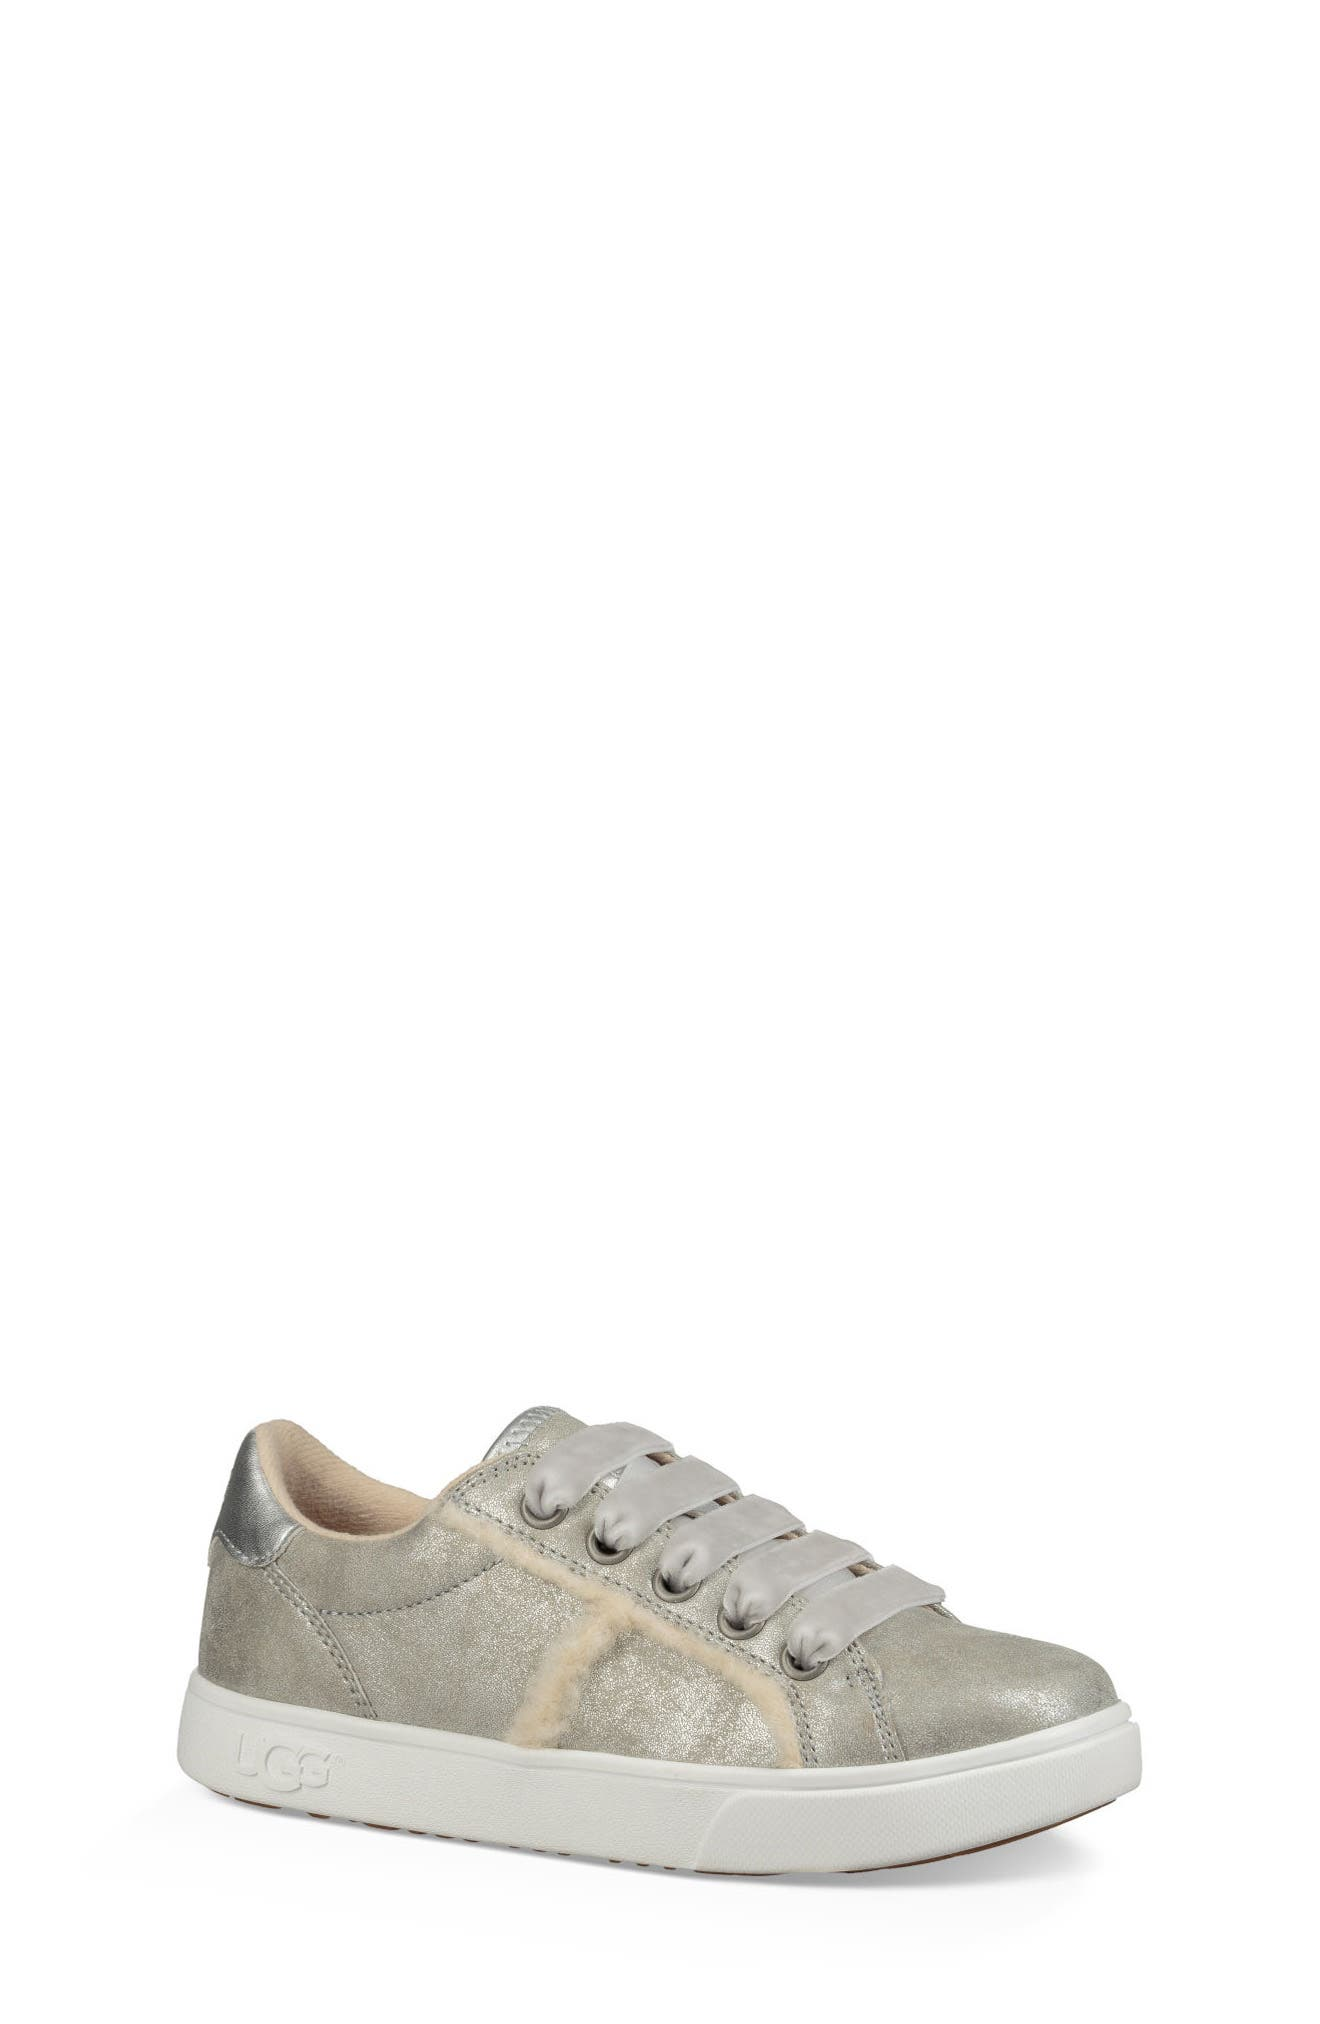 UGG<SUP>®</SUP>, Alanna Low Top Sneaker, Main thumbnail 1, color, SILVER